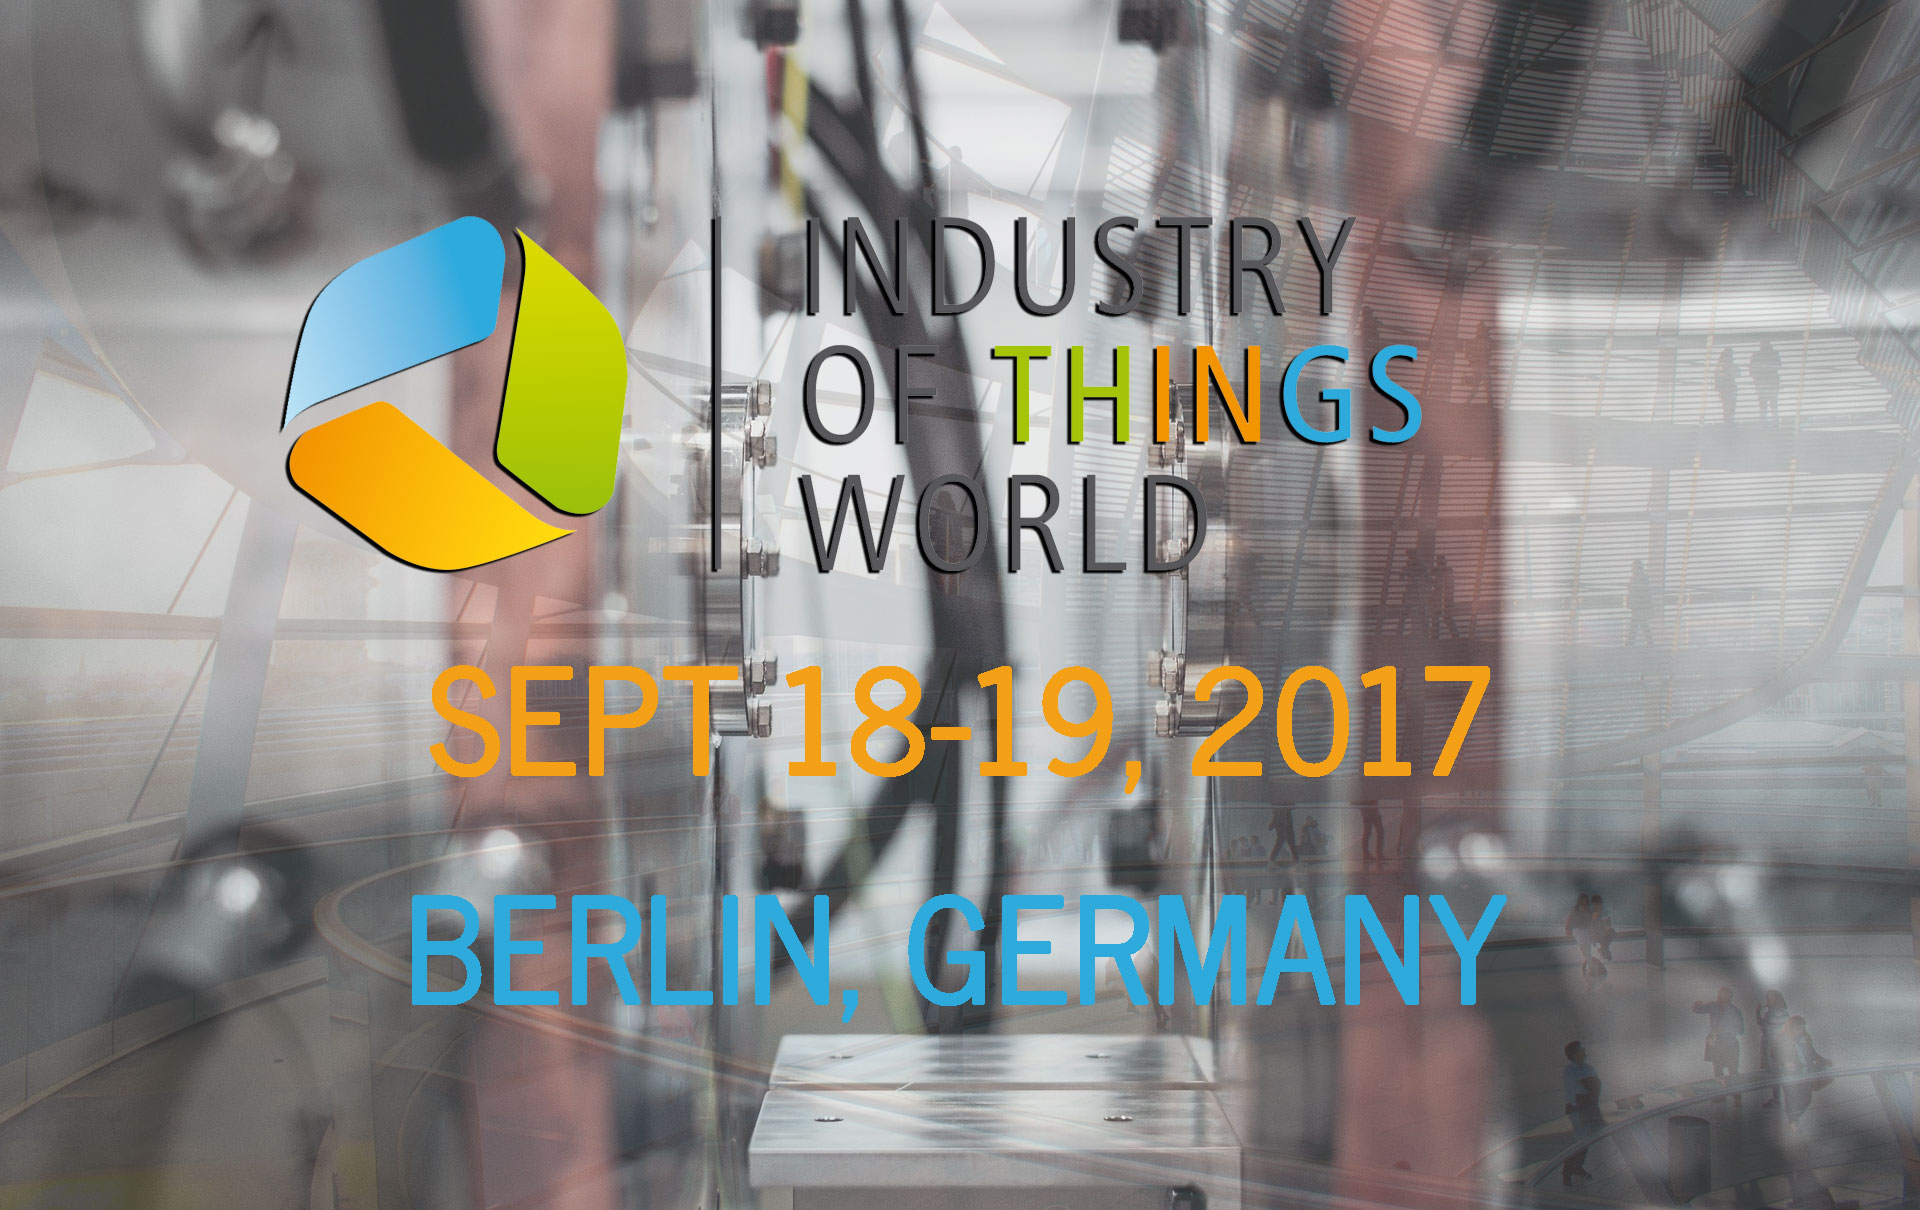 Industry of Things World 2017 Berlin - Recommended Event